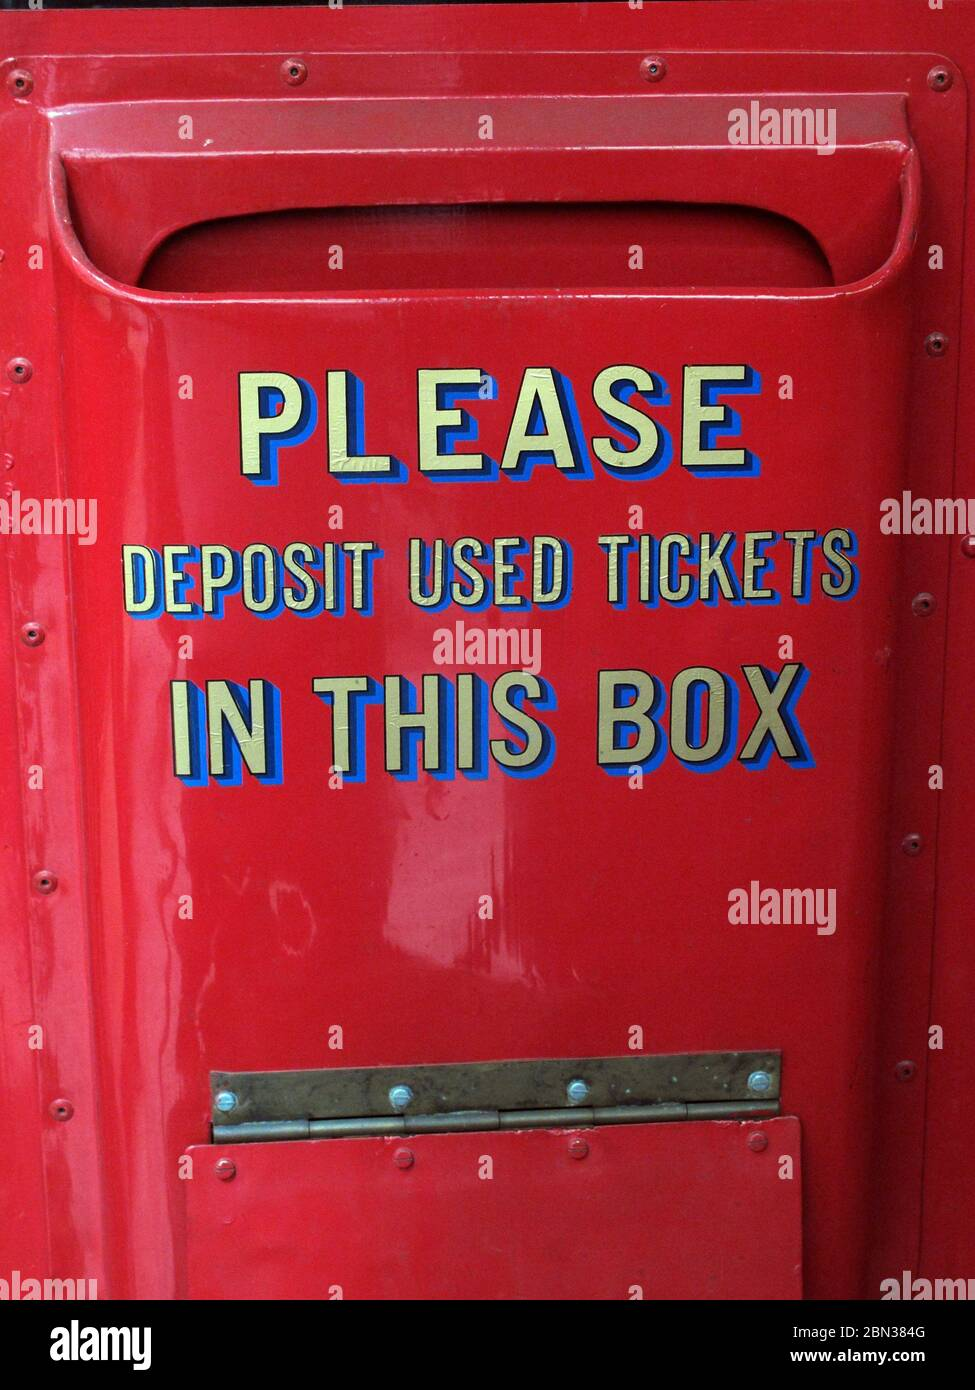 92 bus,Bury to Manchester Piccadilly,Greater Manchester, England, UK, Please deposit used tickets,in this box, Stock Photo